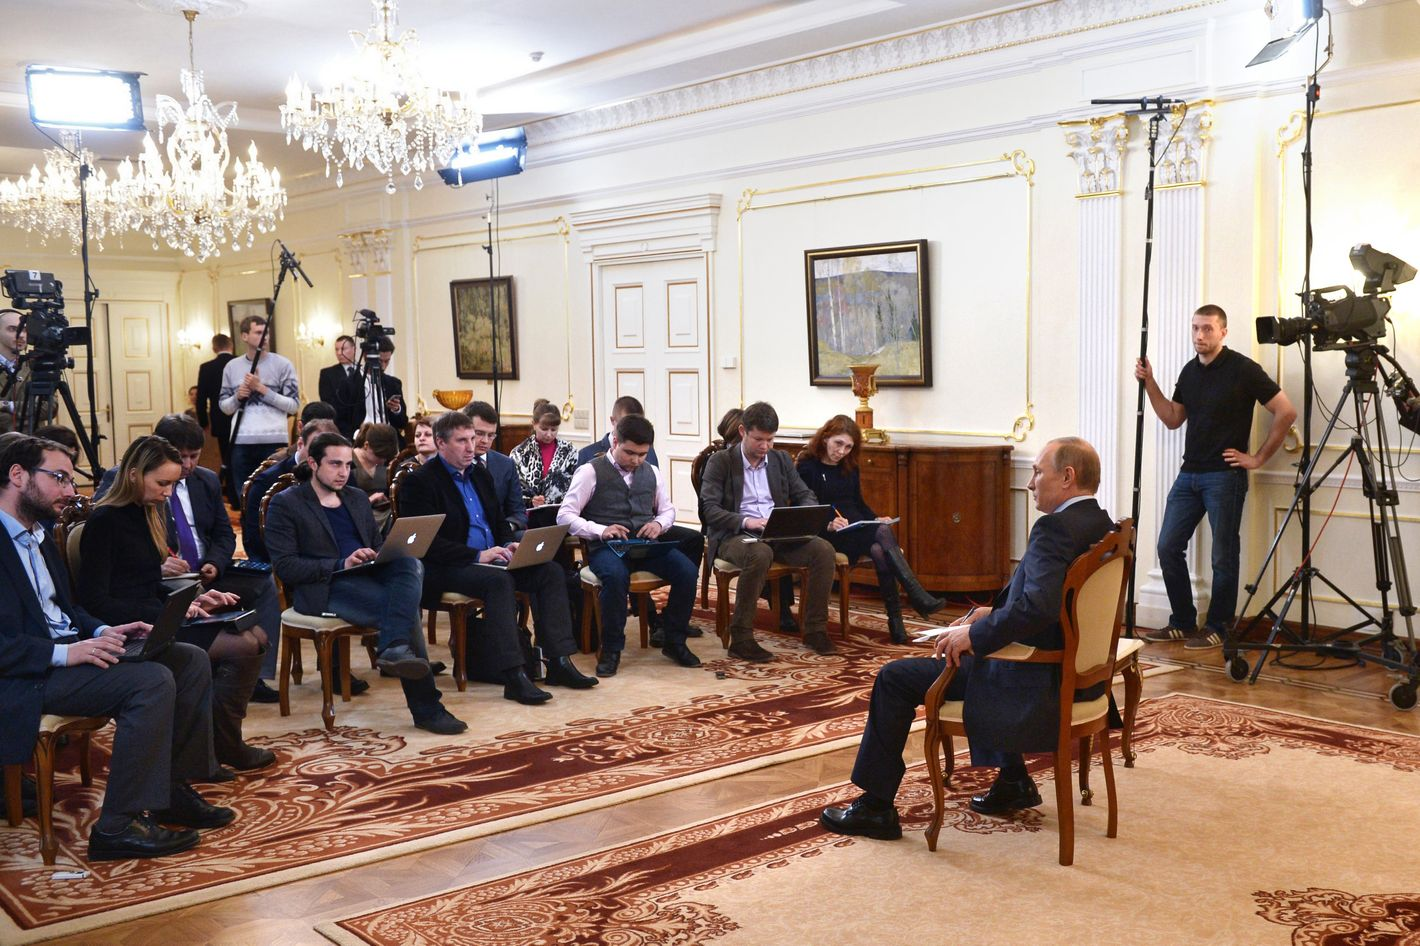 Russian President Vladimir Putin gives a news conference at his country residence of Novo-Ogaryova, outside Moscow, on March 4, 2014. Russian President Vladimir Putin on Tuesday said that deposed Ukrainian president Viktor Yanukovych had no political future but asserted he was legally still head of state.